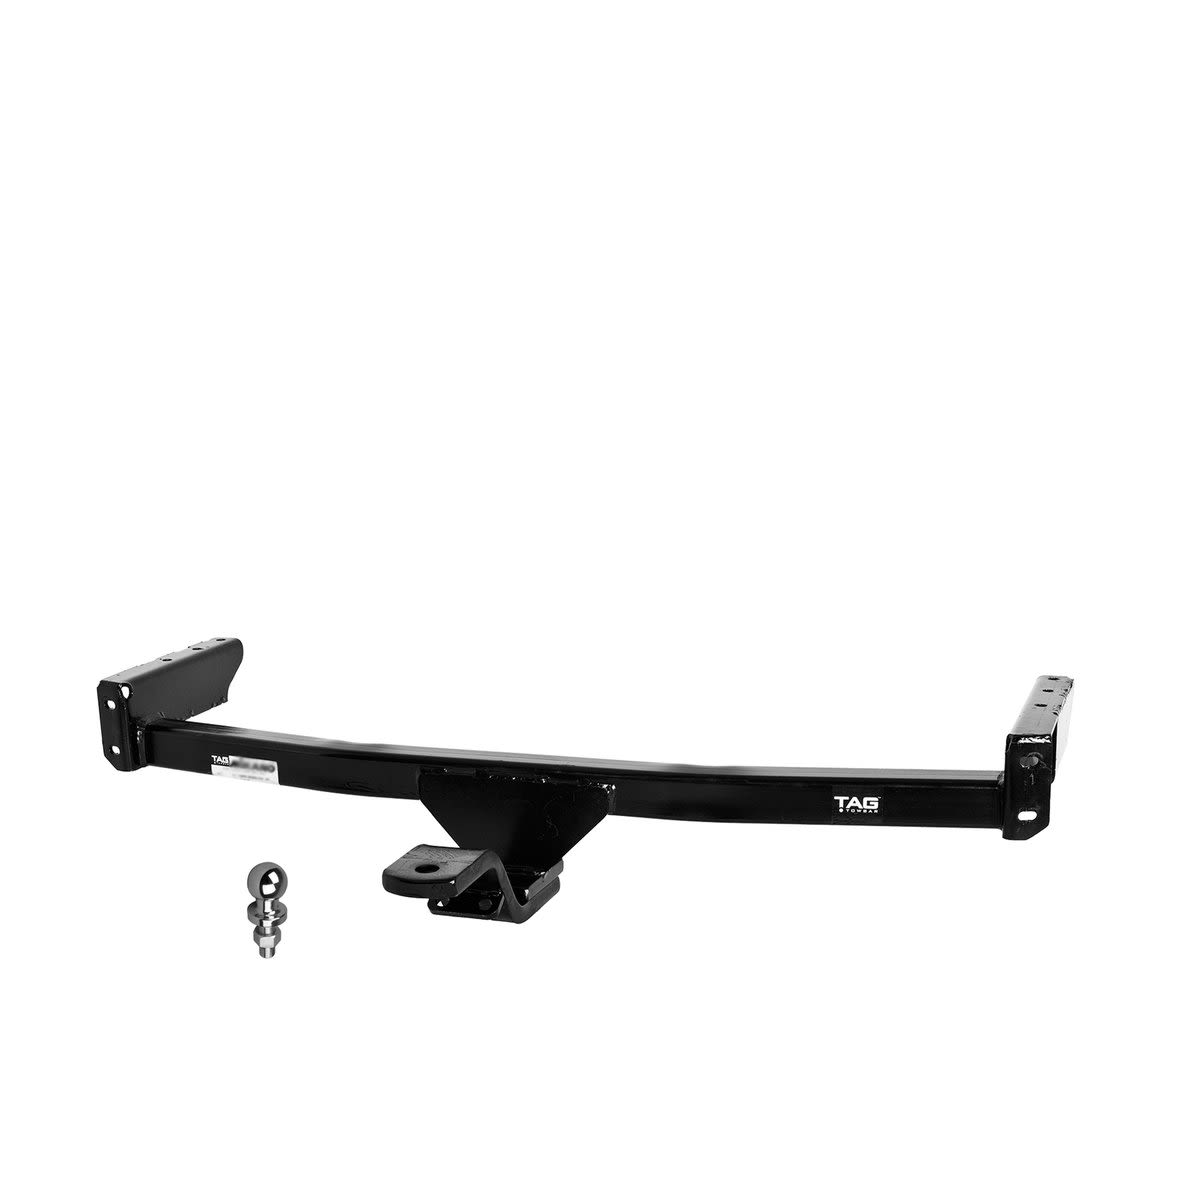 TAG Light Duty Towbar to suit Mitsubishi Delica (10/1986 - 12/1993) - No Wiring Harness